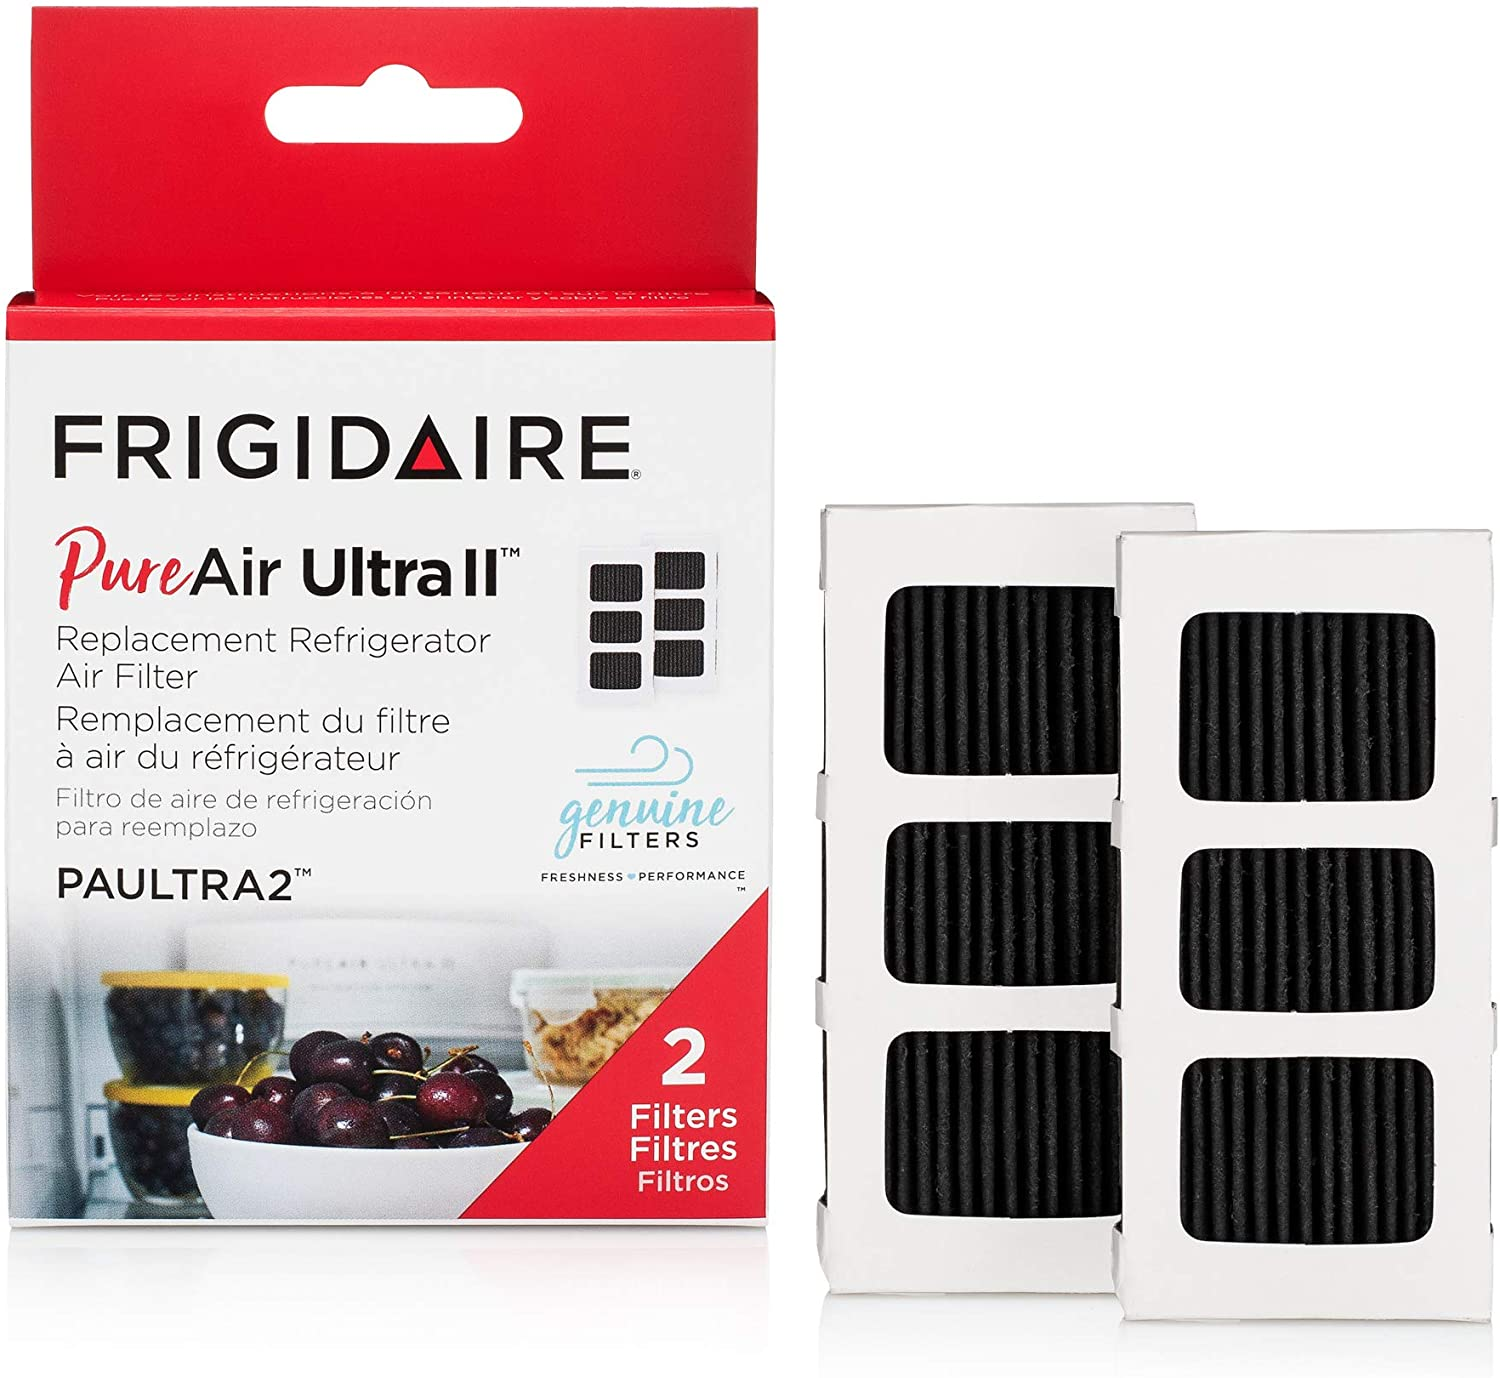 "Frigidaire PAULTRAII2PK PAULTRA2 PureAir Ultra II 2 Pack Air Filter, 3.8"" x 1.8"", 2 Count"